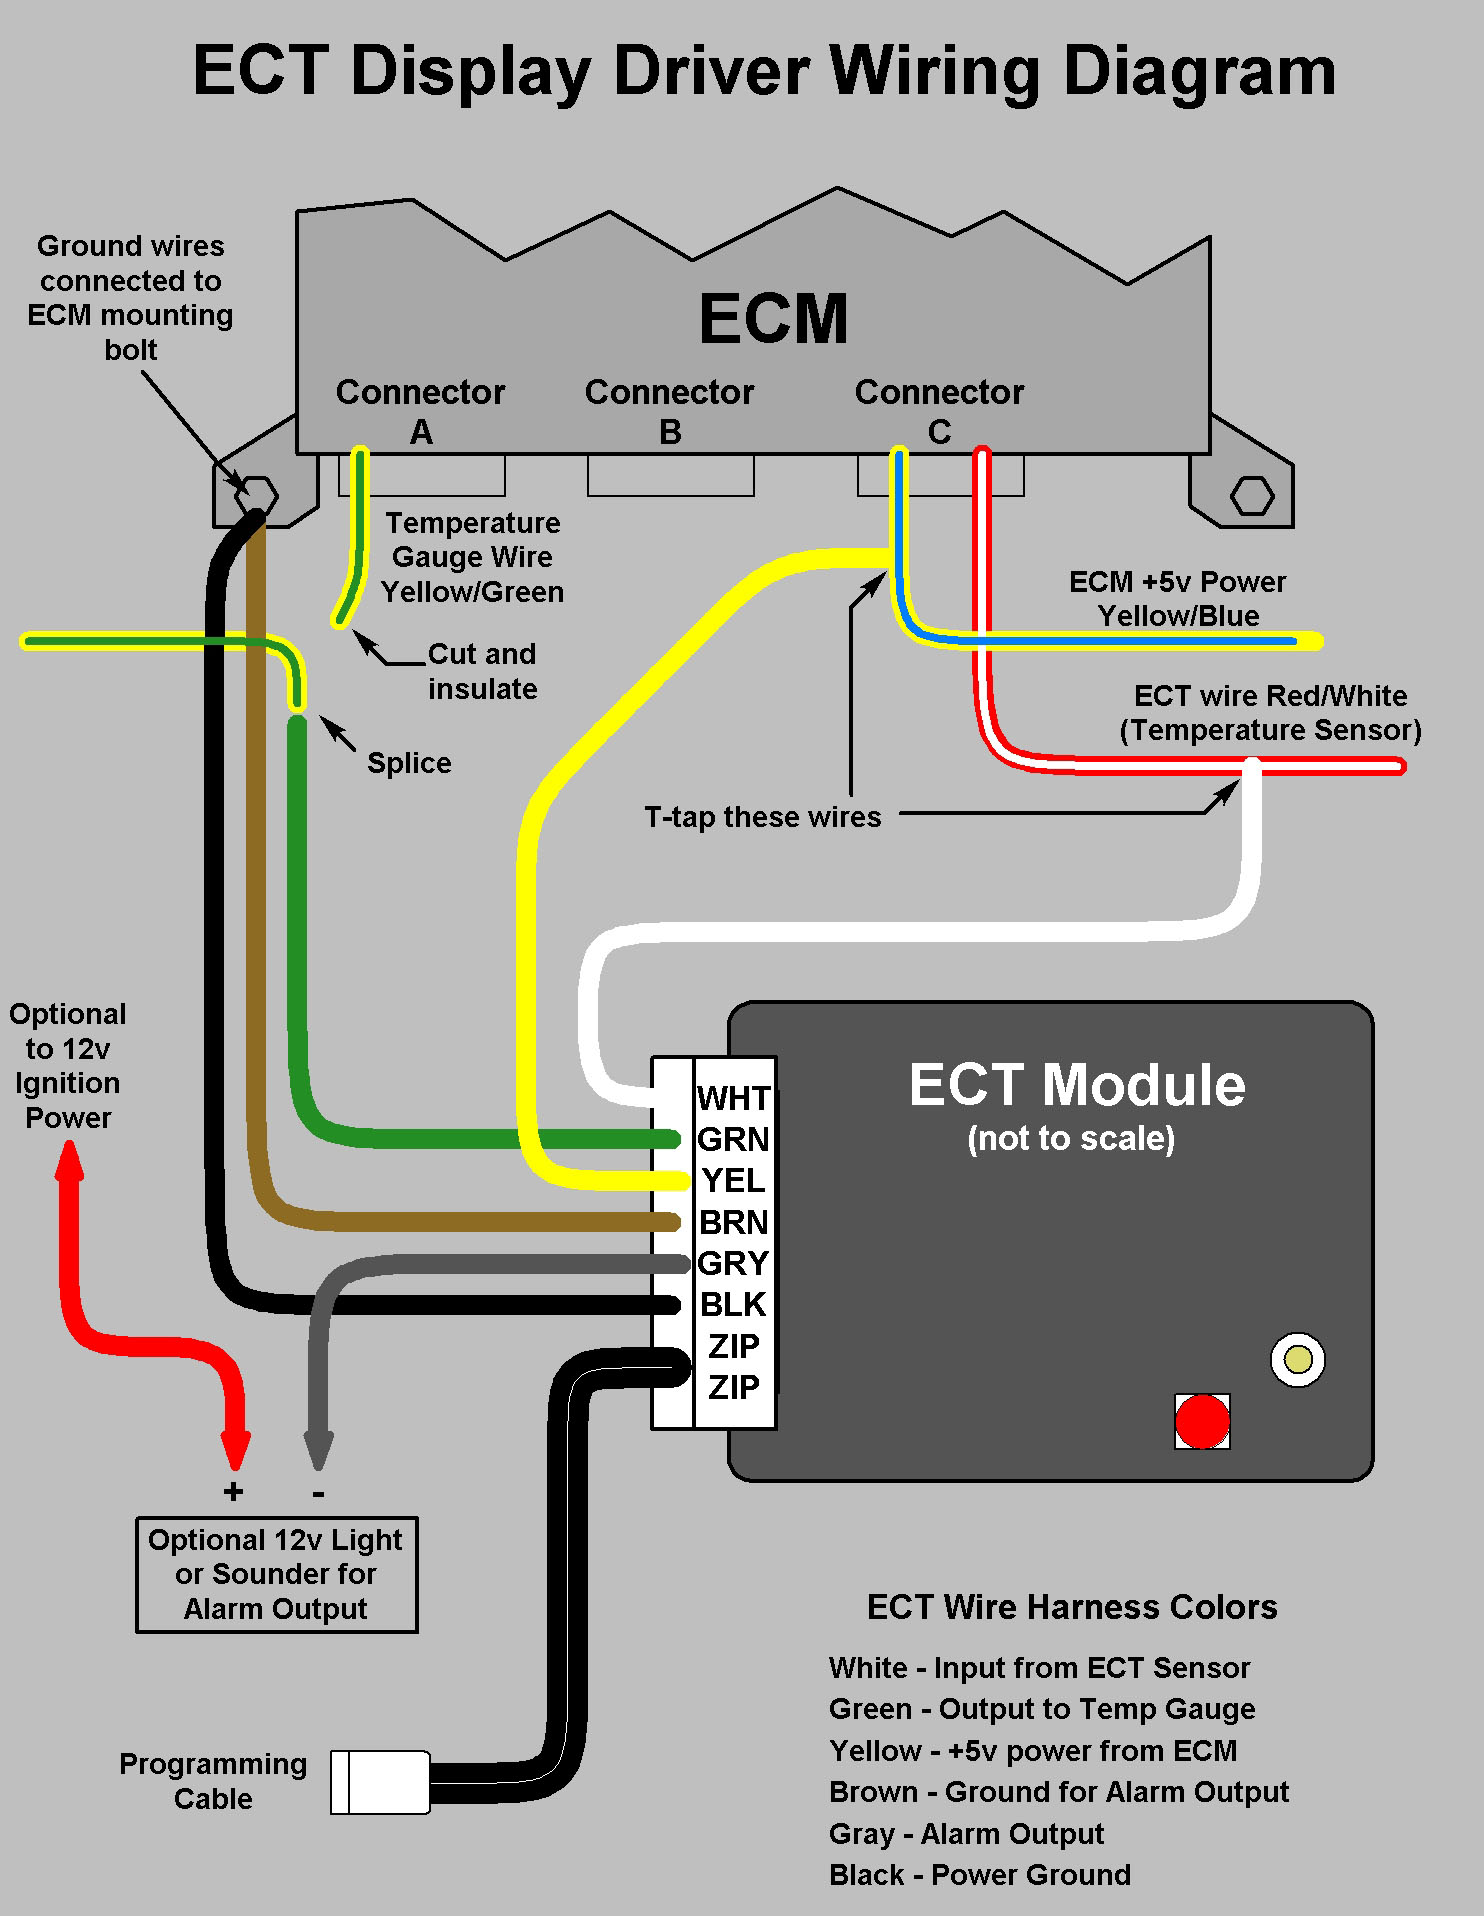 ECT wiring diagram ems wiring diagram management system \u2022 wiring diagrams j squared co Wire Harness Assembly at reclaimingppi.co